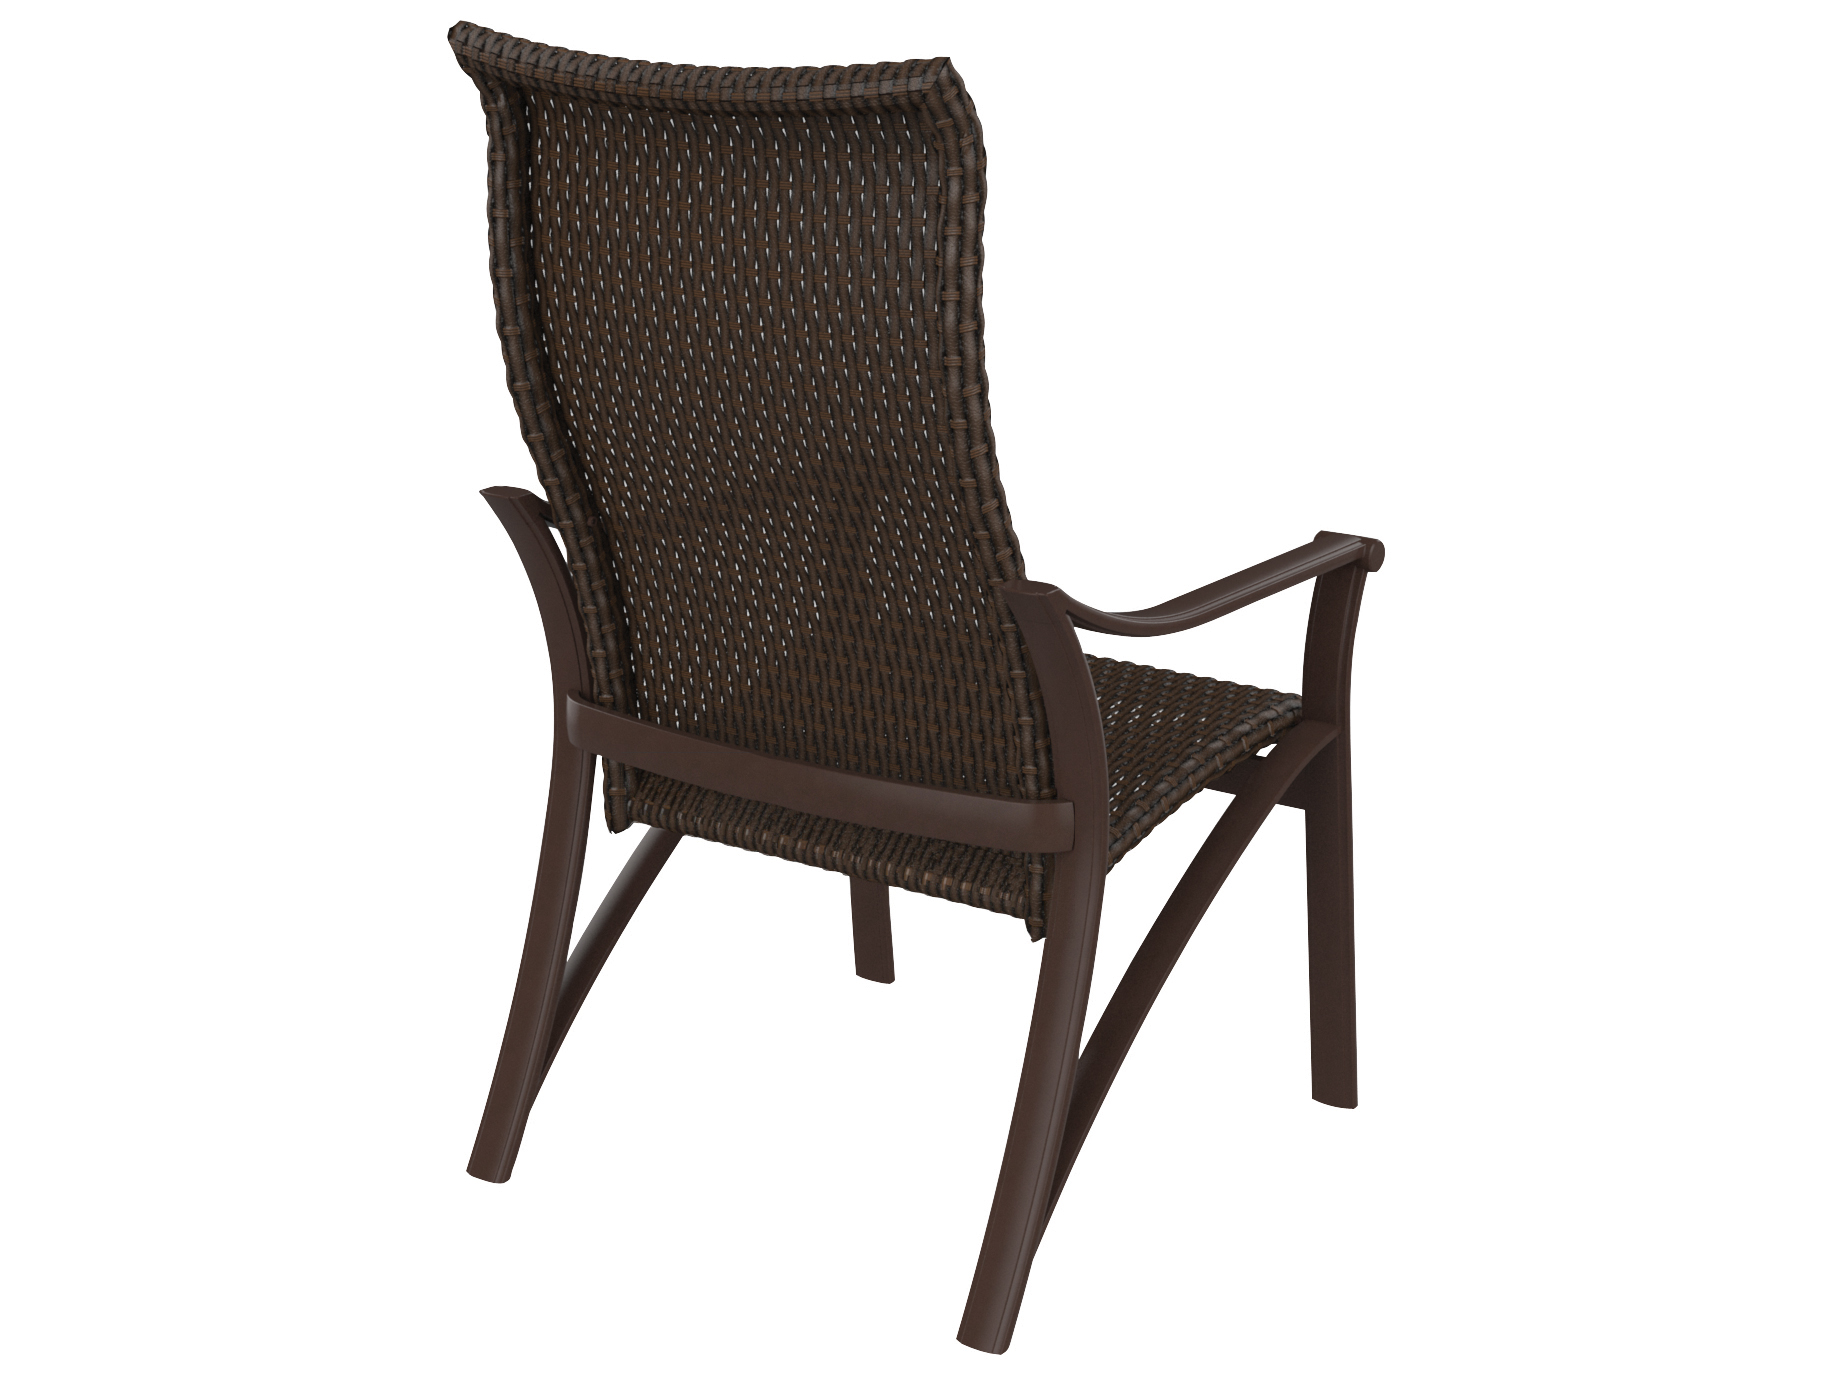 high back chair covers for sale kitchen cushions with ties target tropitone corsica woven dining tp161501ws